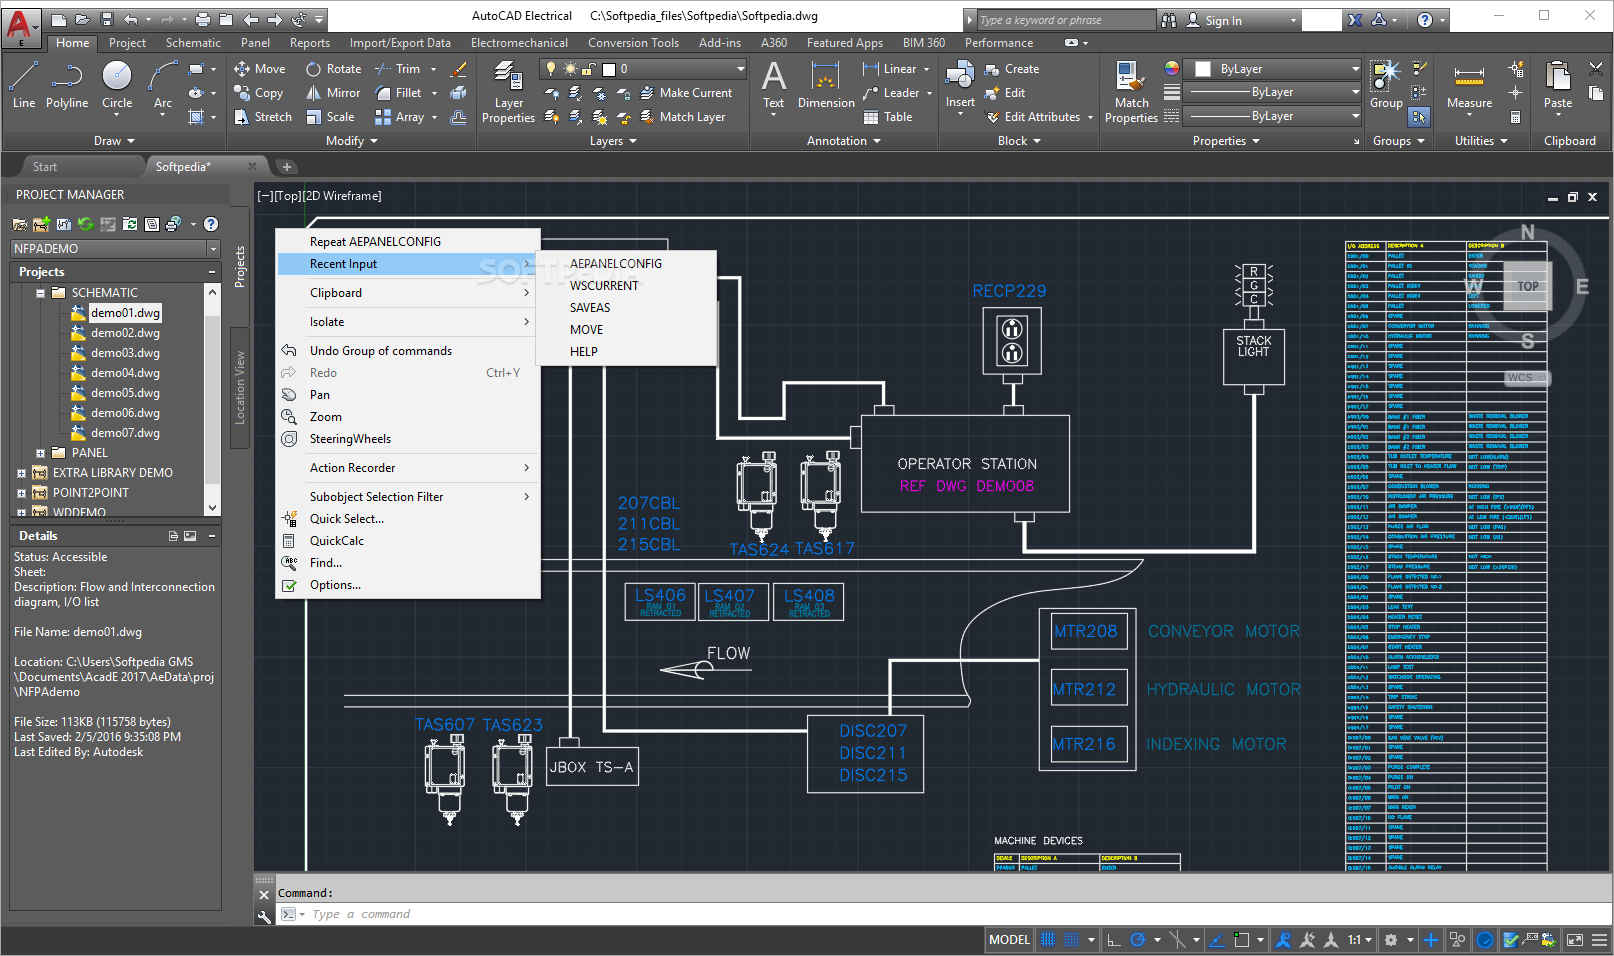 Download AutoCAD Electrical 2019 / 2019.0.1 Hotfix